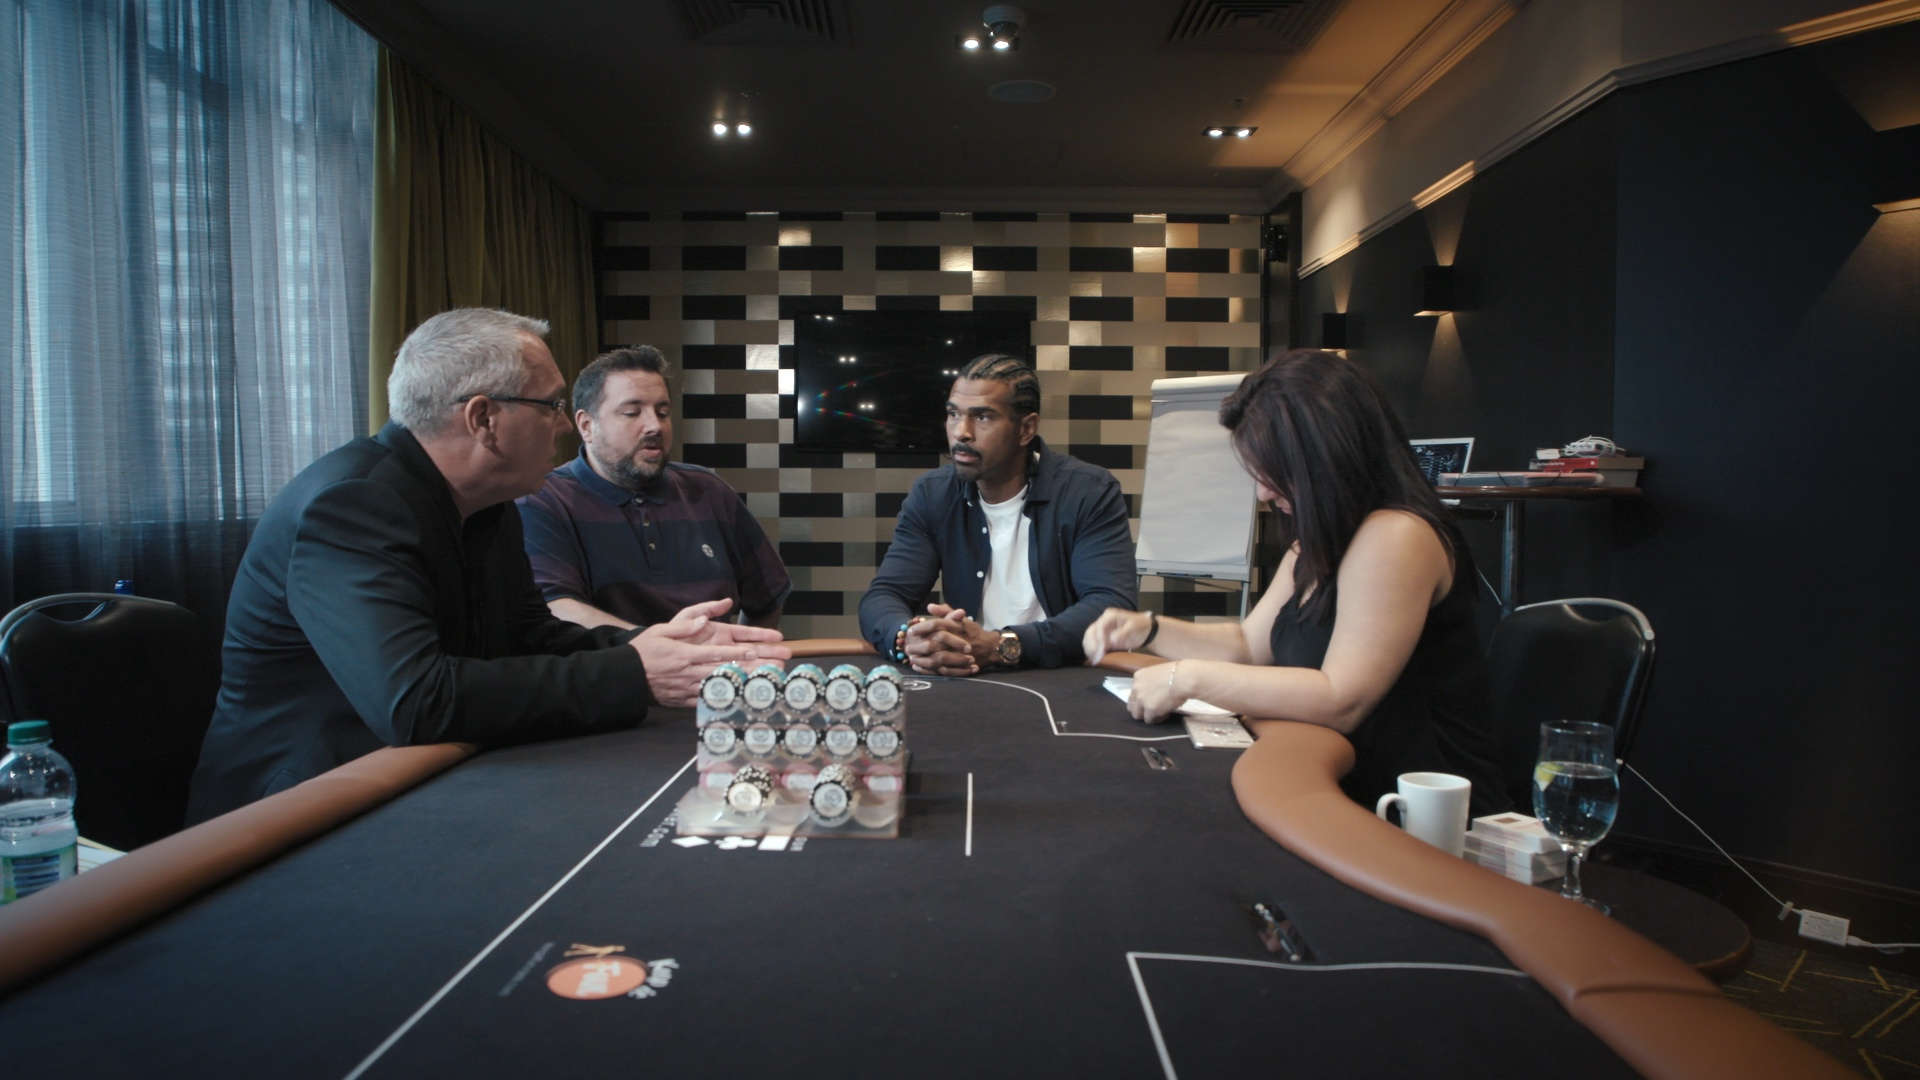 David Haye struggled to get to grips with poker at the start